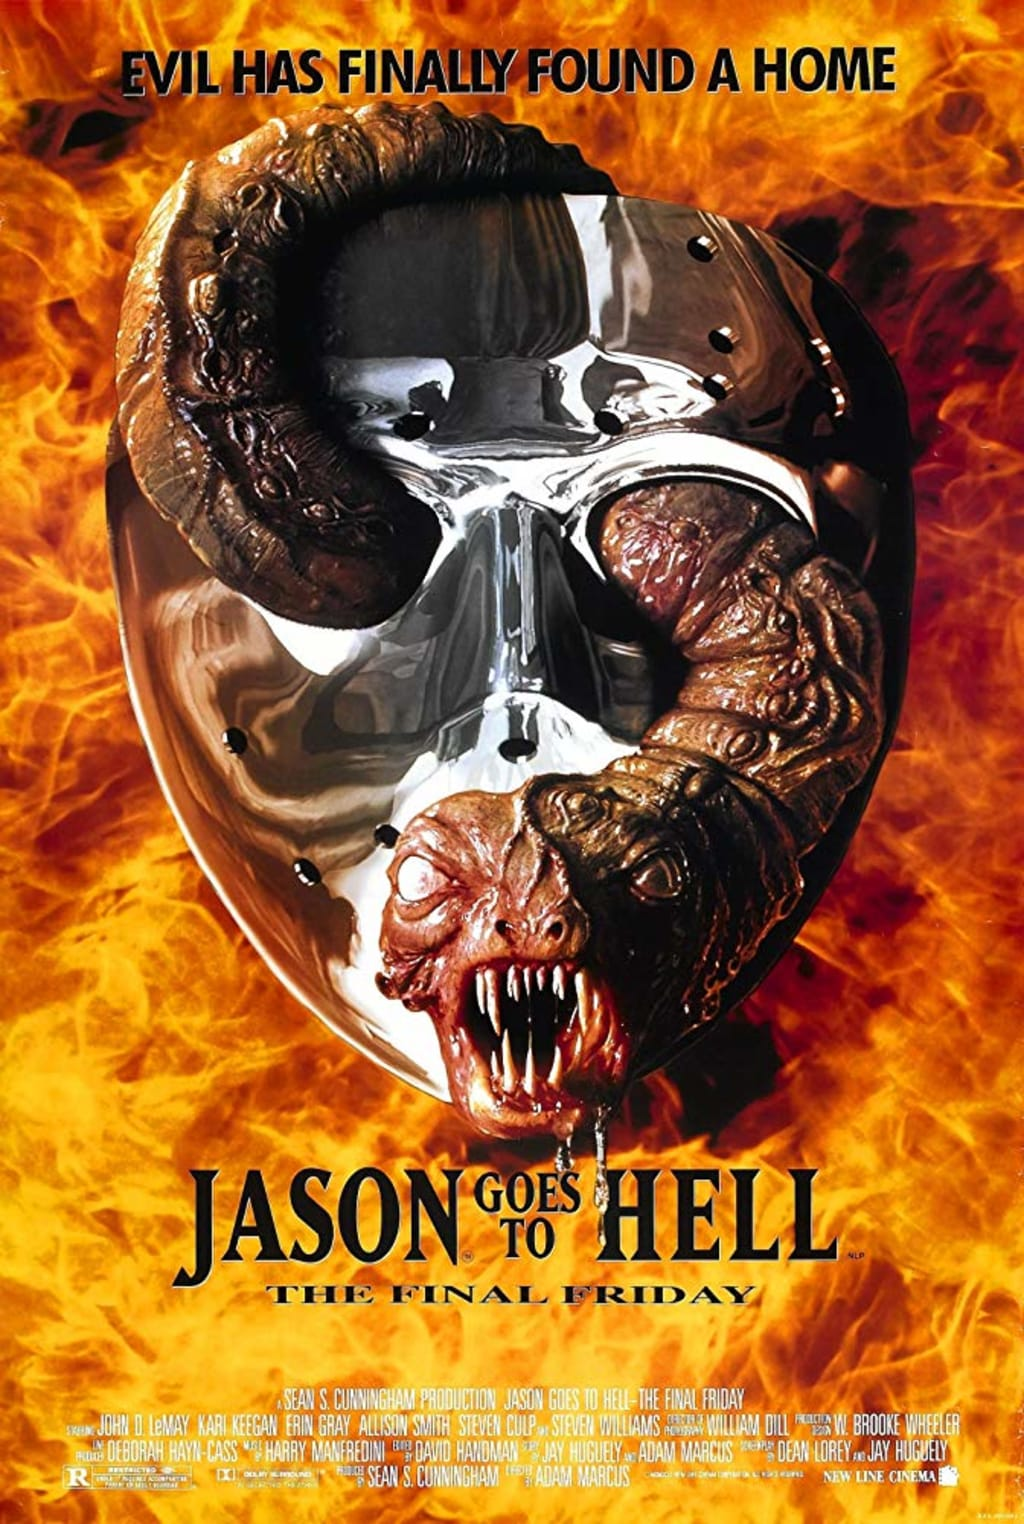 Reed Alexander's Horror Review of 'Jason Goes to Hell: The Final Friday' (1993)